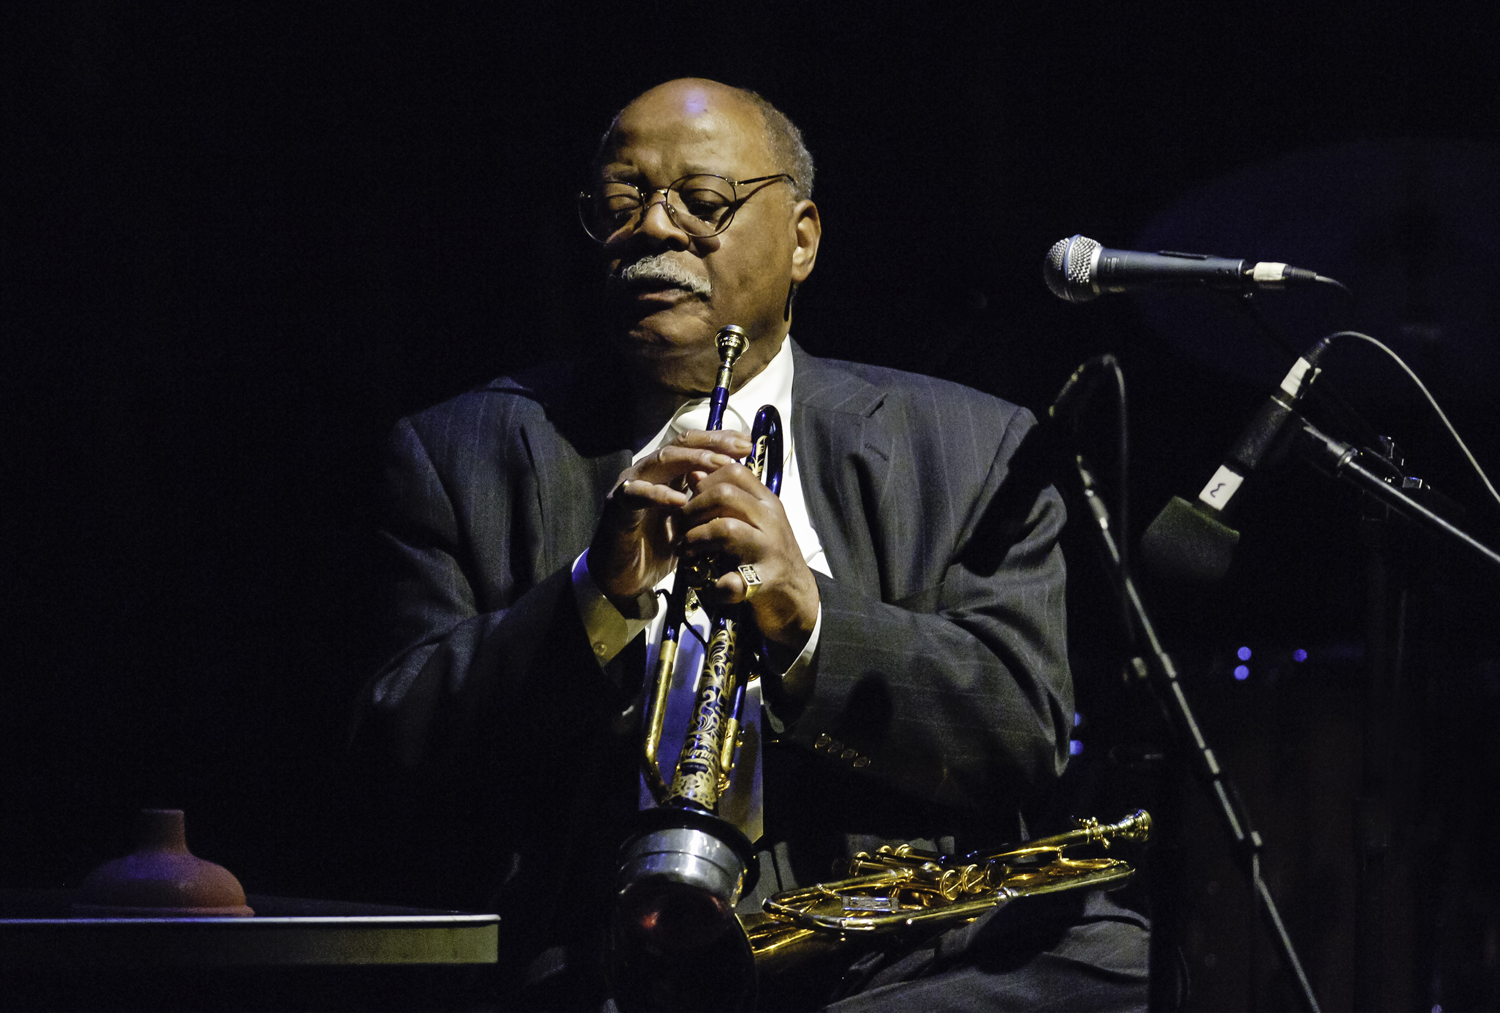 American Jazz musician Clark Terry performs on trumpet and flluegelhorn at Jack Kleinsinger's Highlights during a  Salute to Jimmy Cobb  at the Tribeca Performing Arts Center in New York City on March 10, 2005.